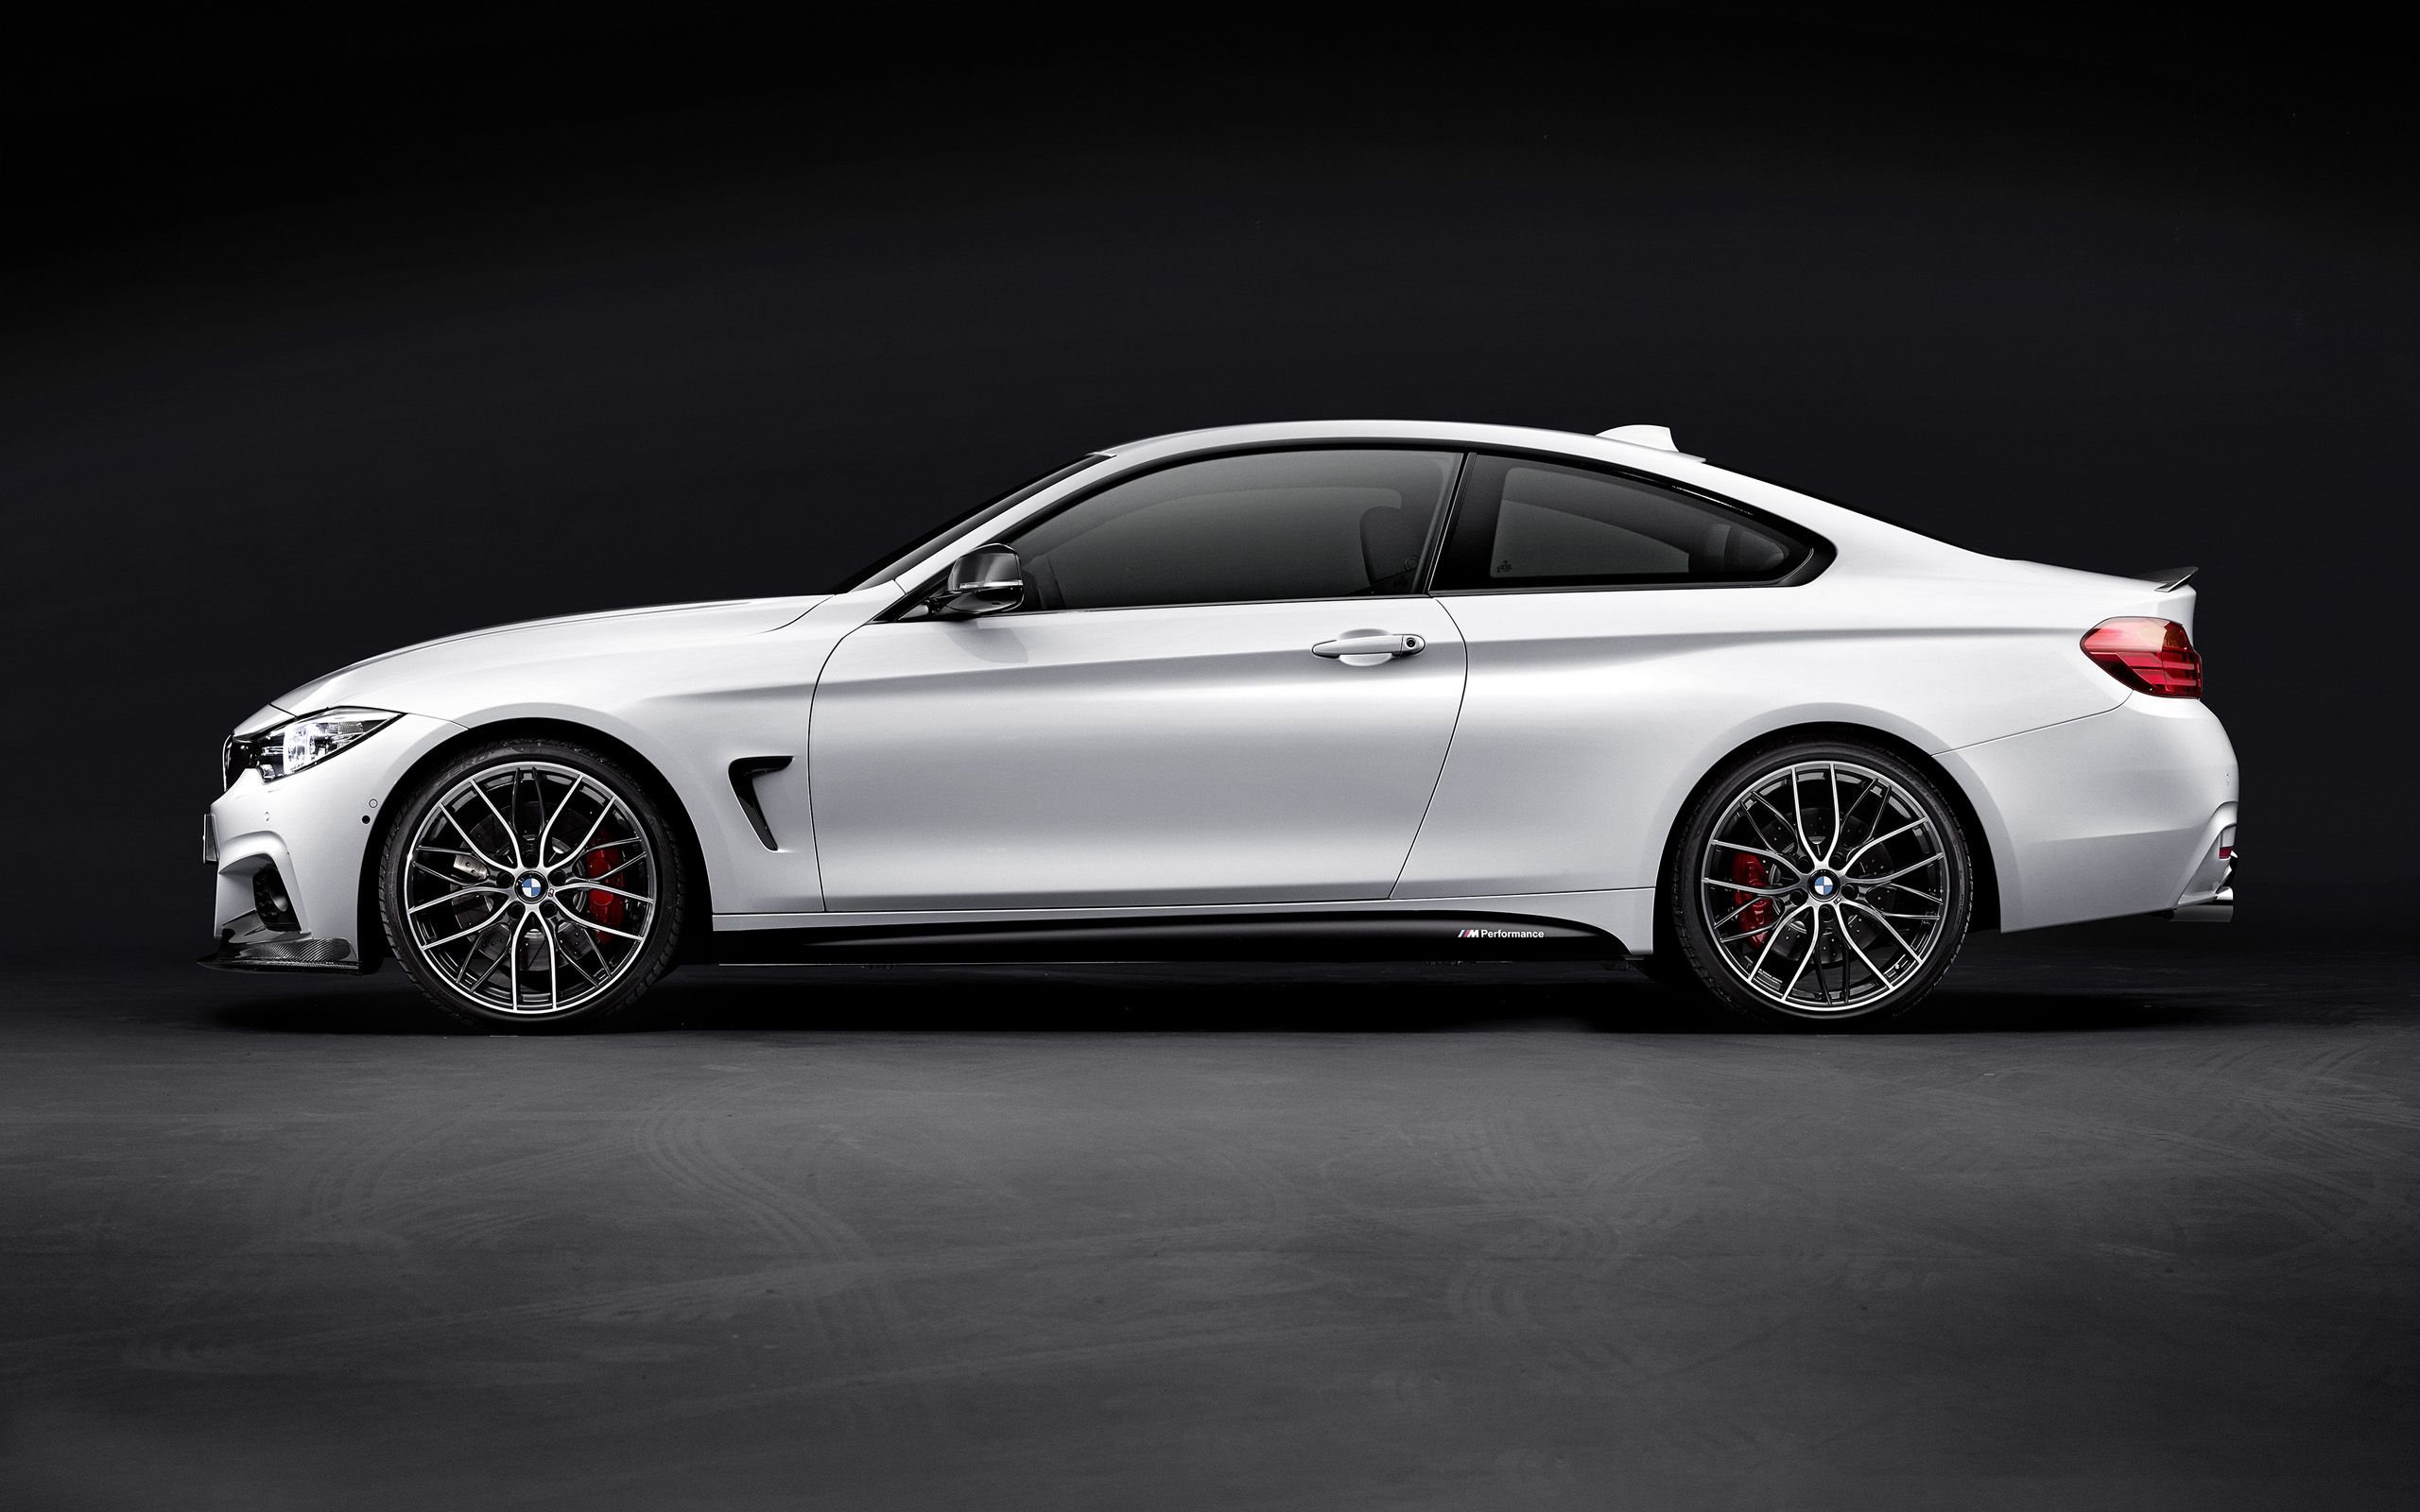 Bmw 4 Series Coupe With M Performance Parts Bmw 4 Series Bmw 4 Bmw 4 Series Coupe